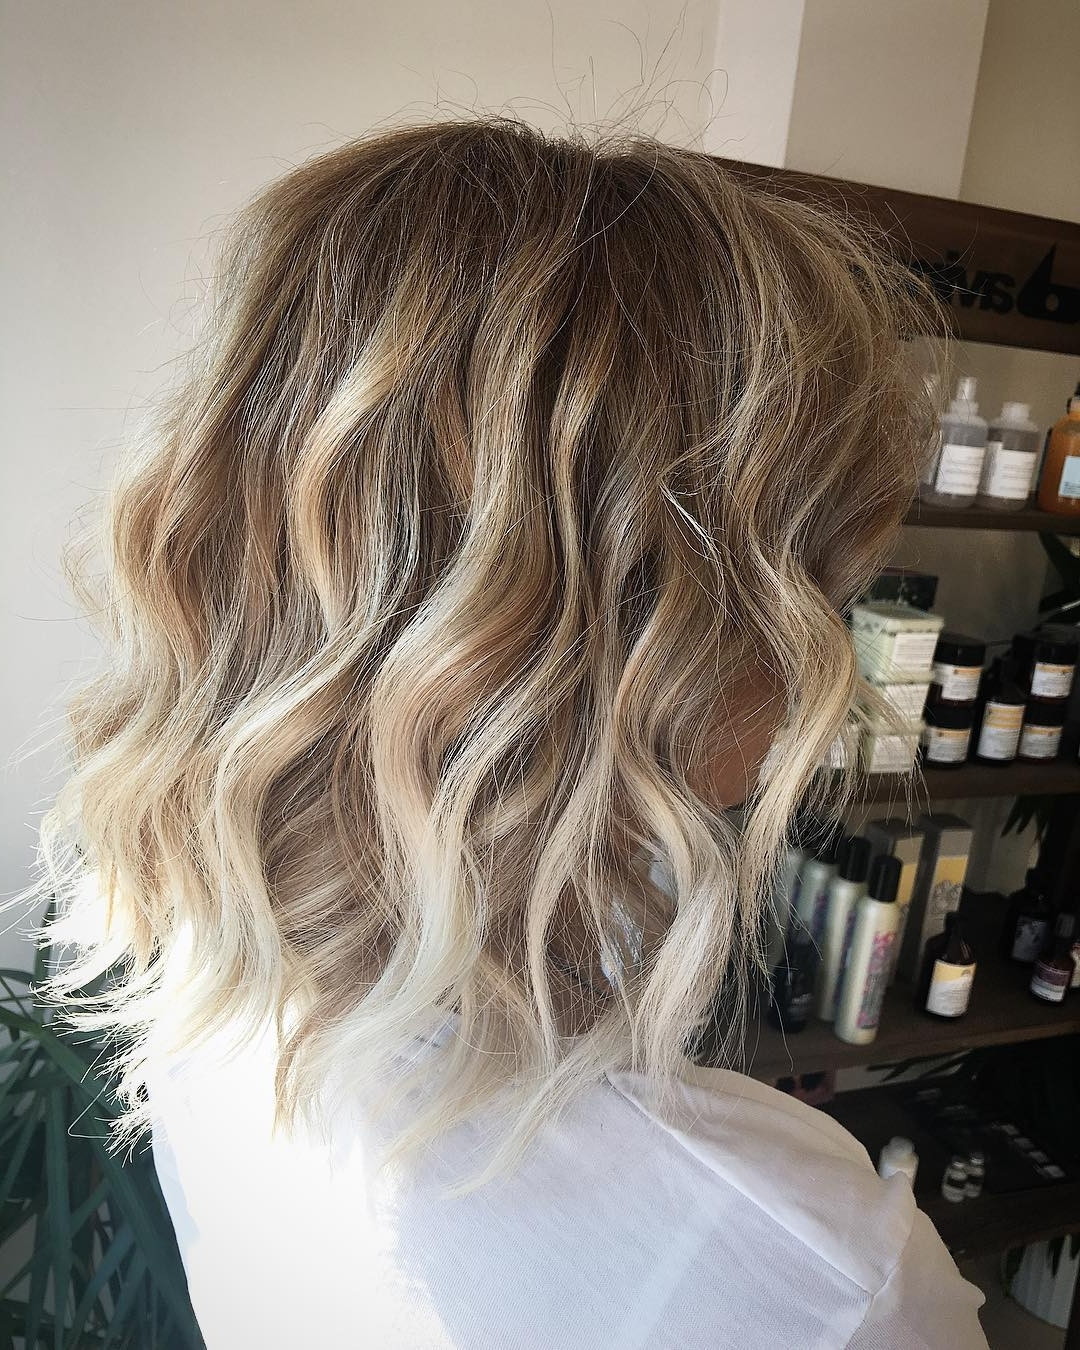 20 Beautiful Blonde Balayage Hair Color Ideas – Trendy Hair Color 2017 With Regard To Famous Icy Highlights And Loose Curls Blonde Hairstyles (View 15 of 20)